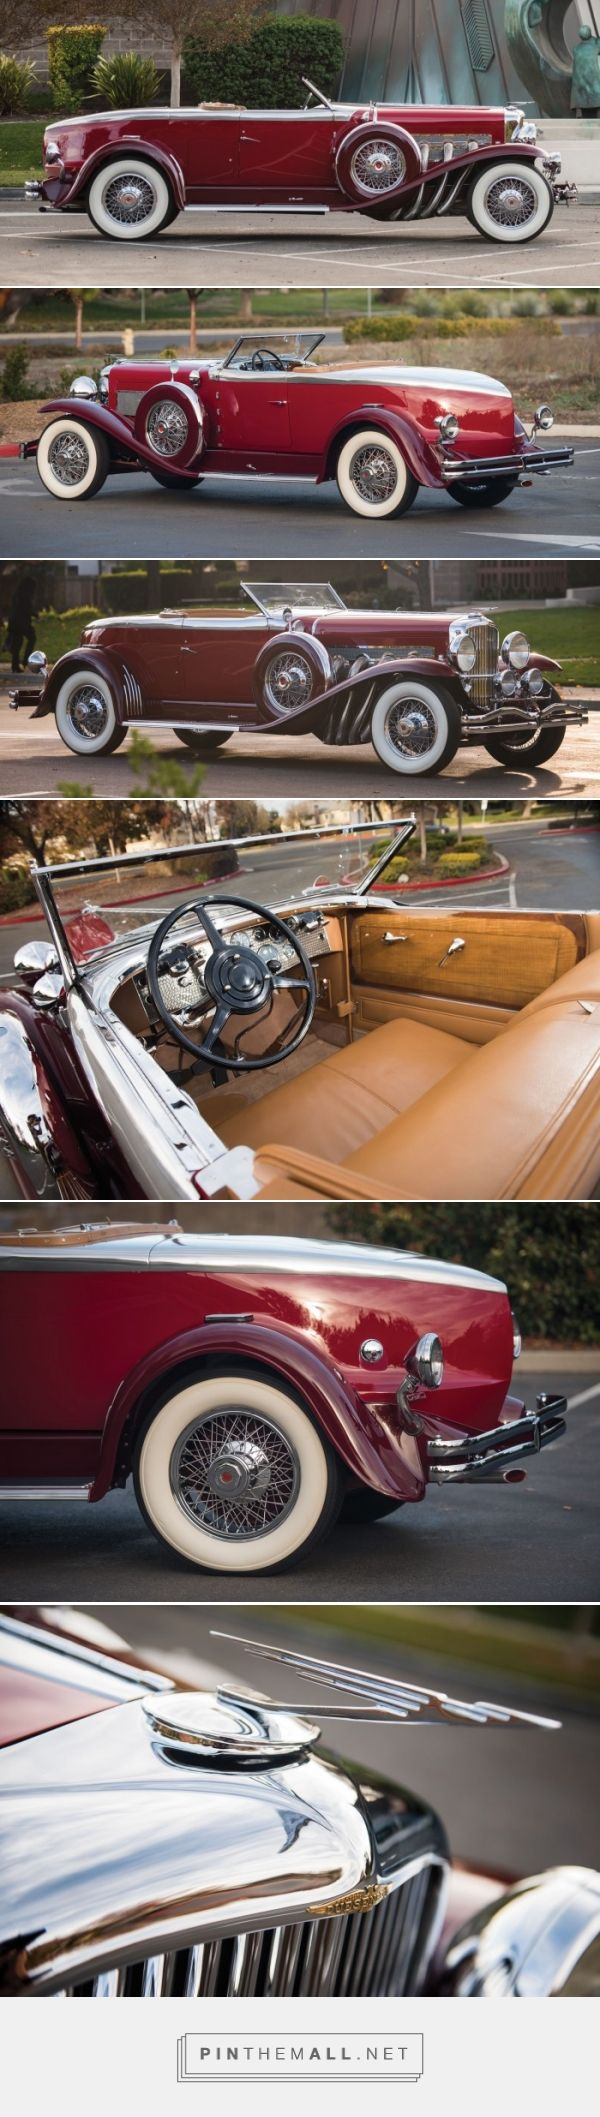 Best 25+ Duesenberg car ideas on Pinterest | Classic car trader ...